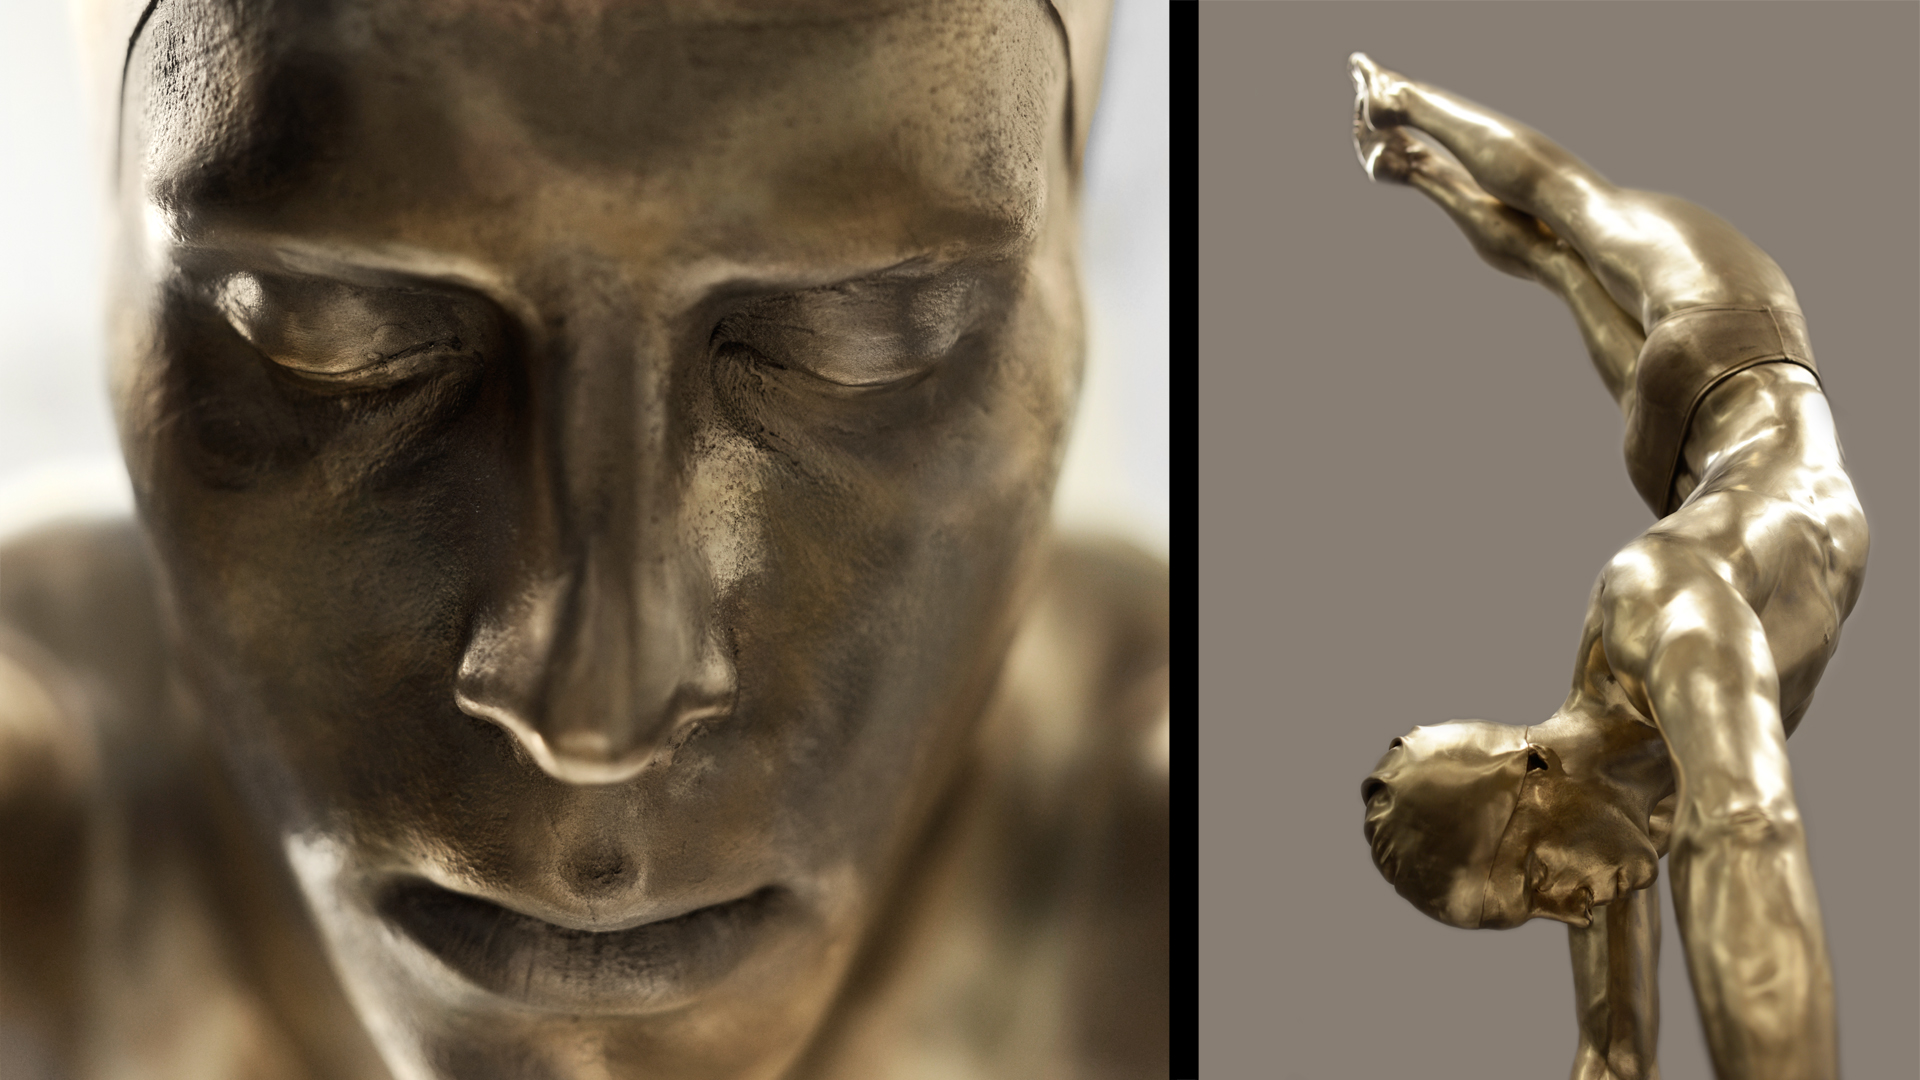 'Diver' , 2014 -Bronze, 77 x 25 x 11 inches, Collection of the artist